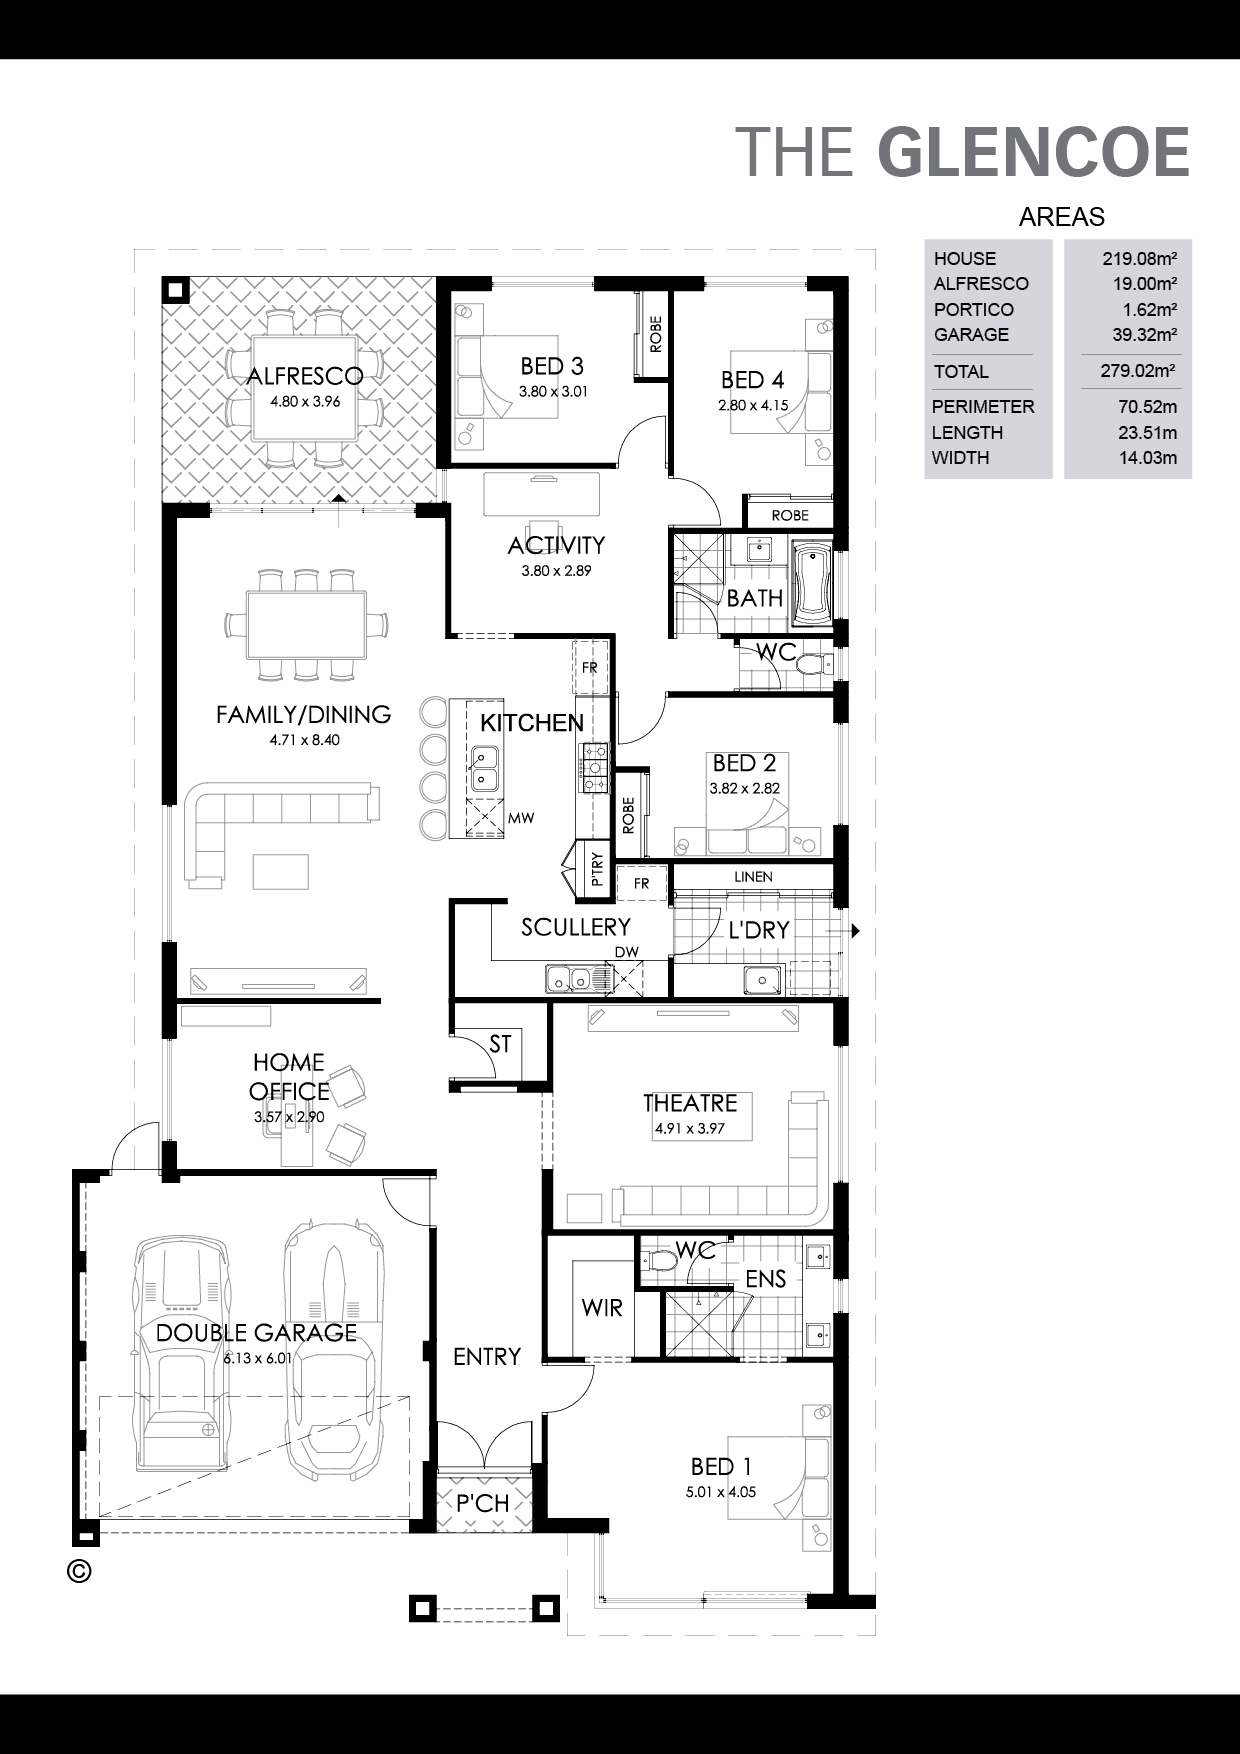 The Glencoe Floorplan